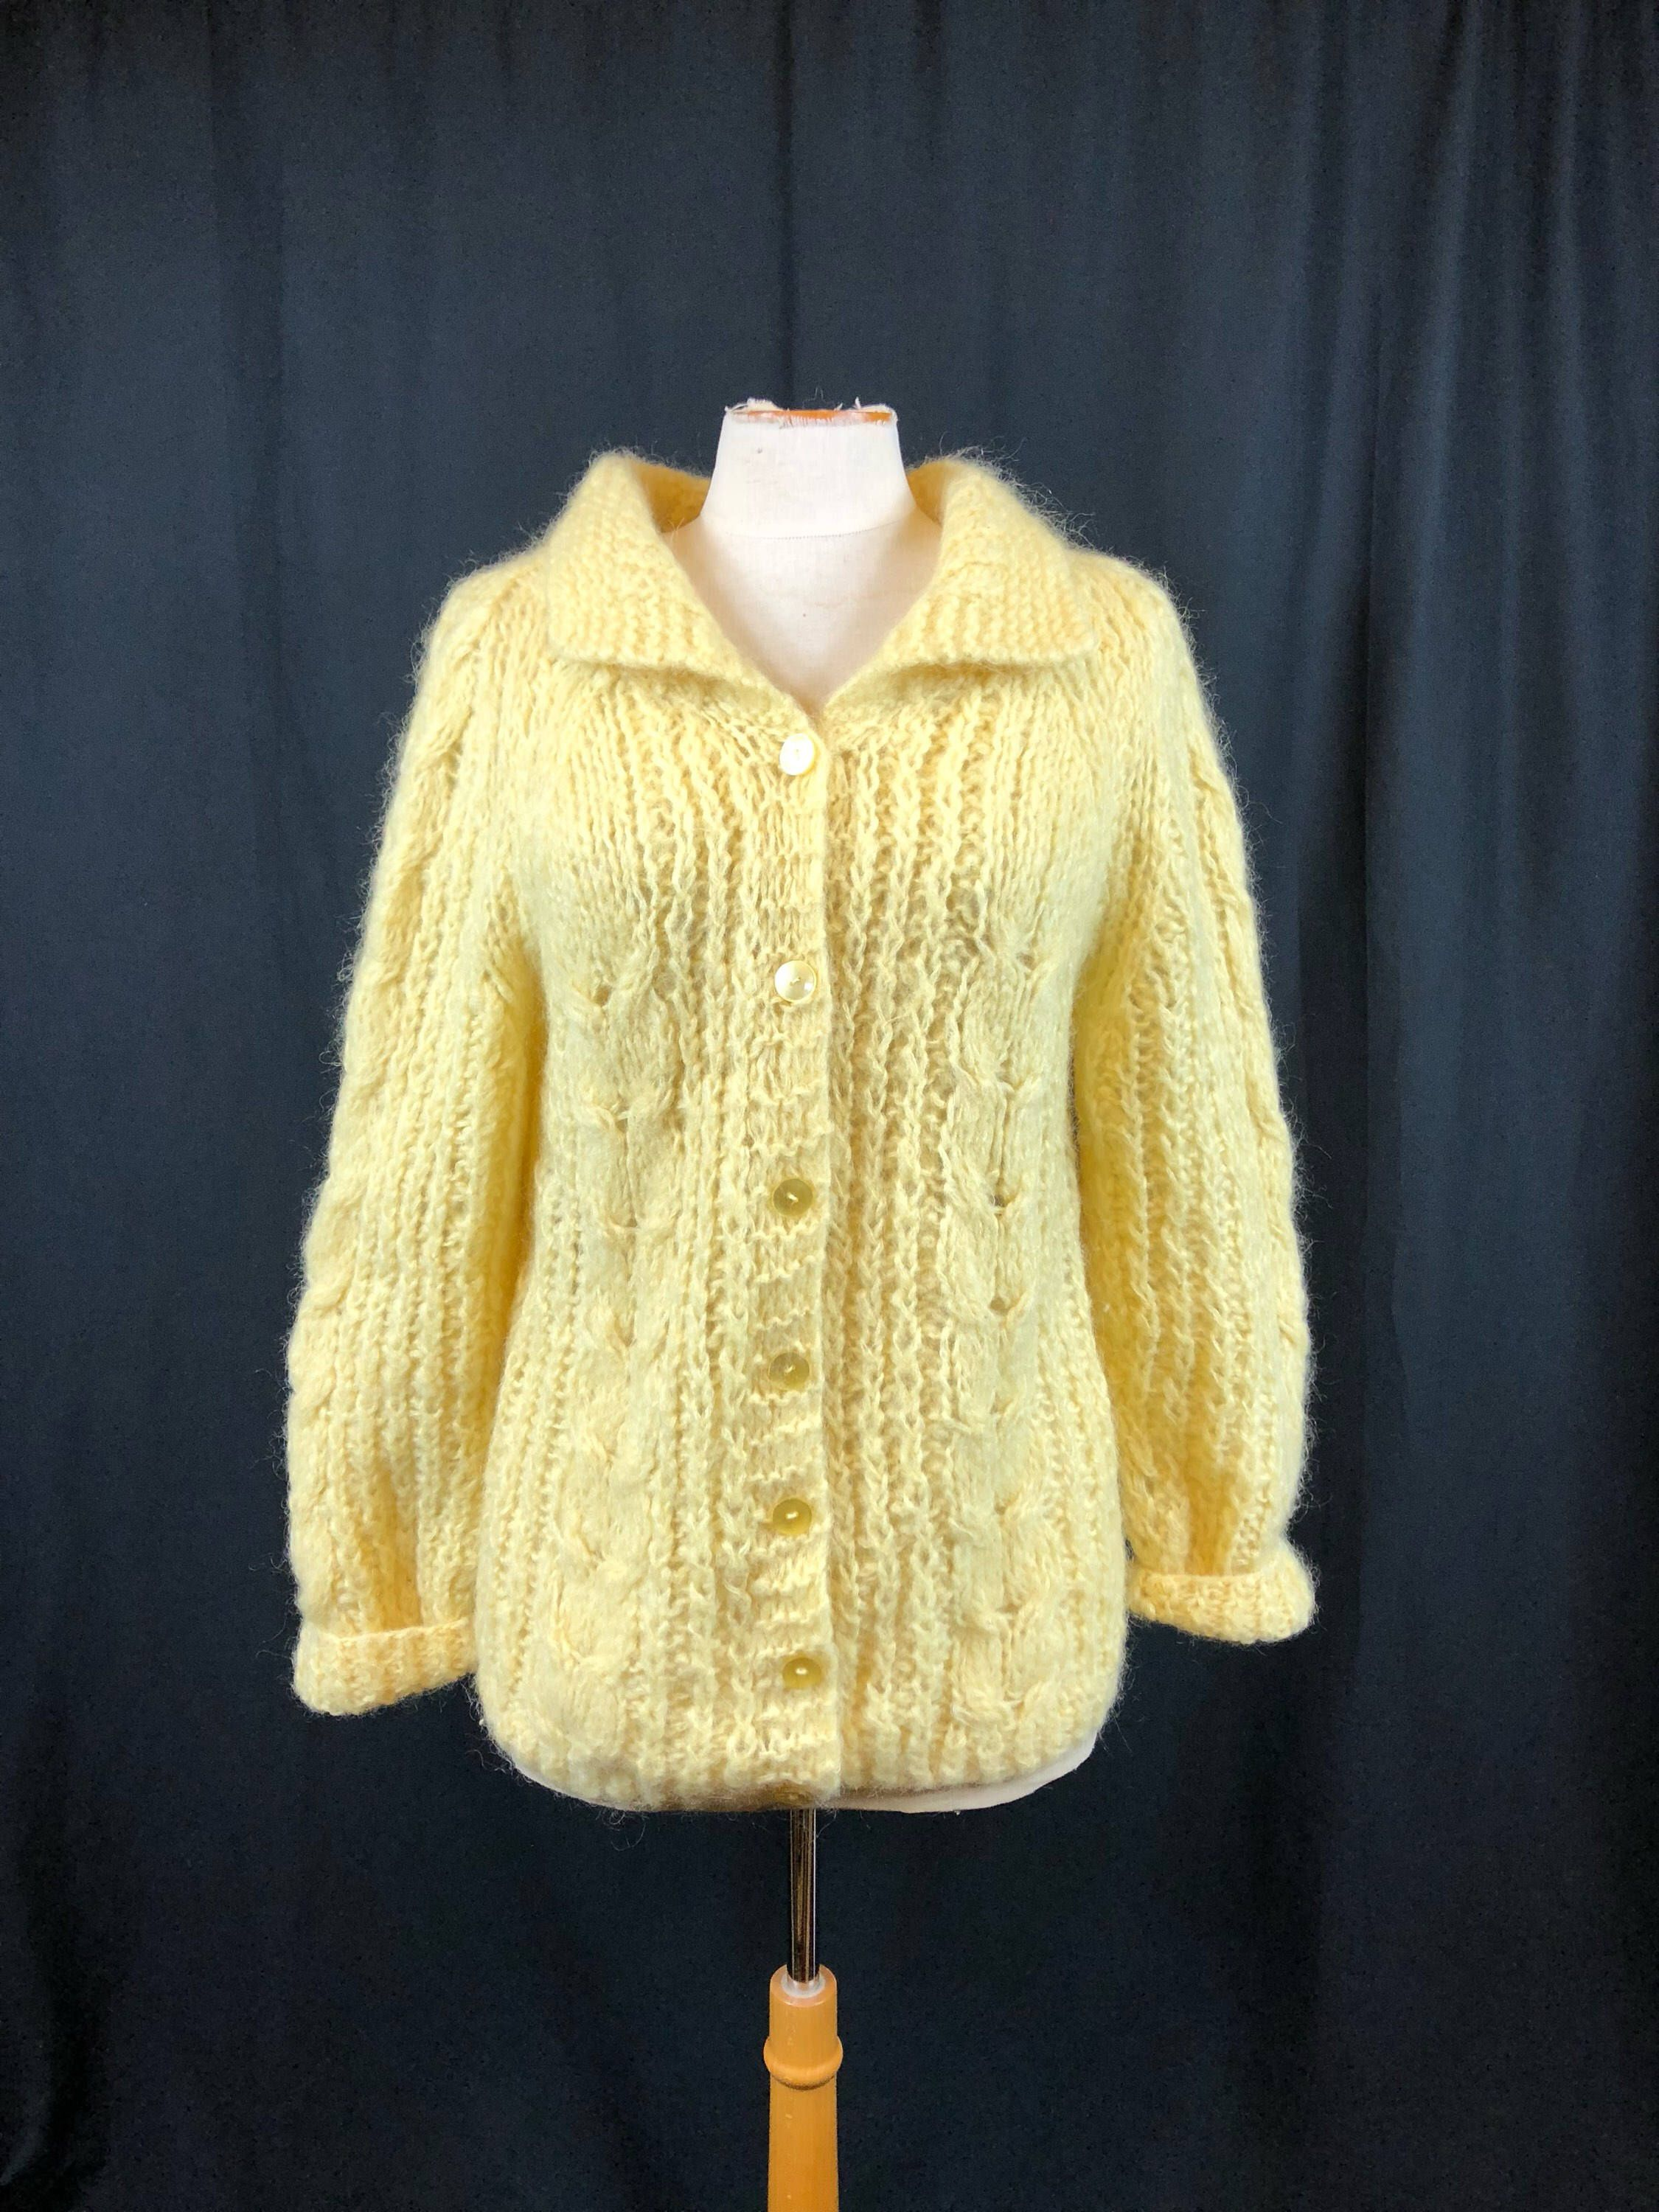 b7babc8c62eb47 Oversized Vintage Sweater Jumper Yellow Knit Long Sleeve Mohair Womens  Loose Knit Sweater Soft Fluffy Hand